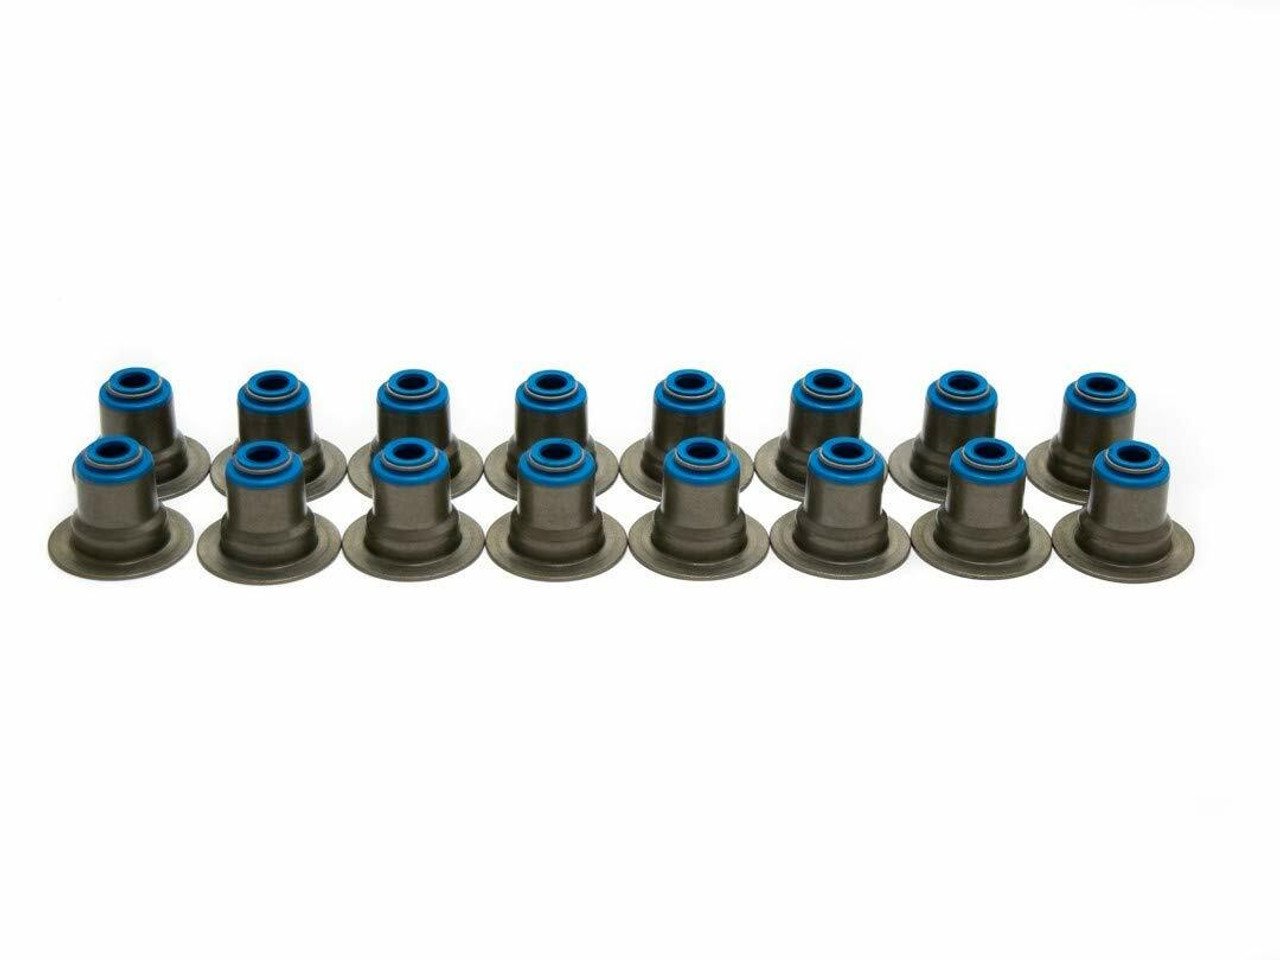 Texas Speed TSP Stage 3 High Lift Vortec Truck Camshaft 4.8 5.3 6.0 Includes Spring Set, Seals, Pushrods and Gasket Kit